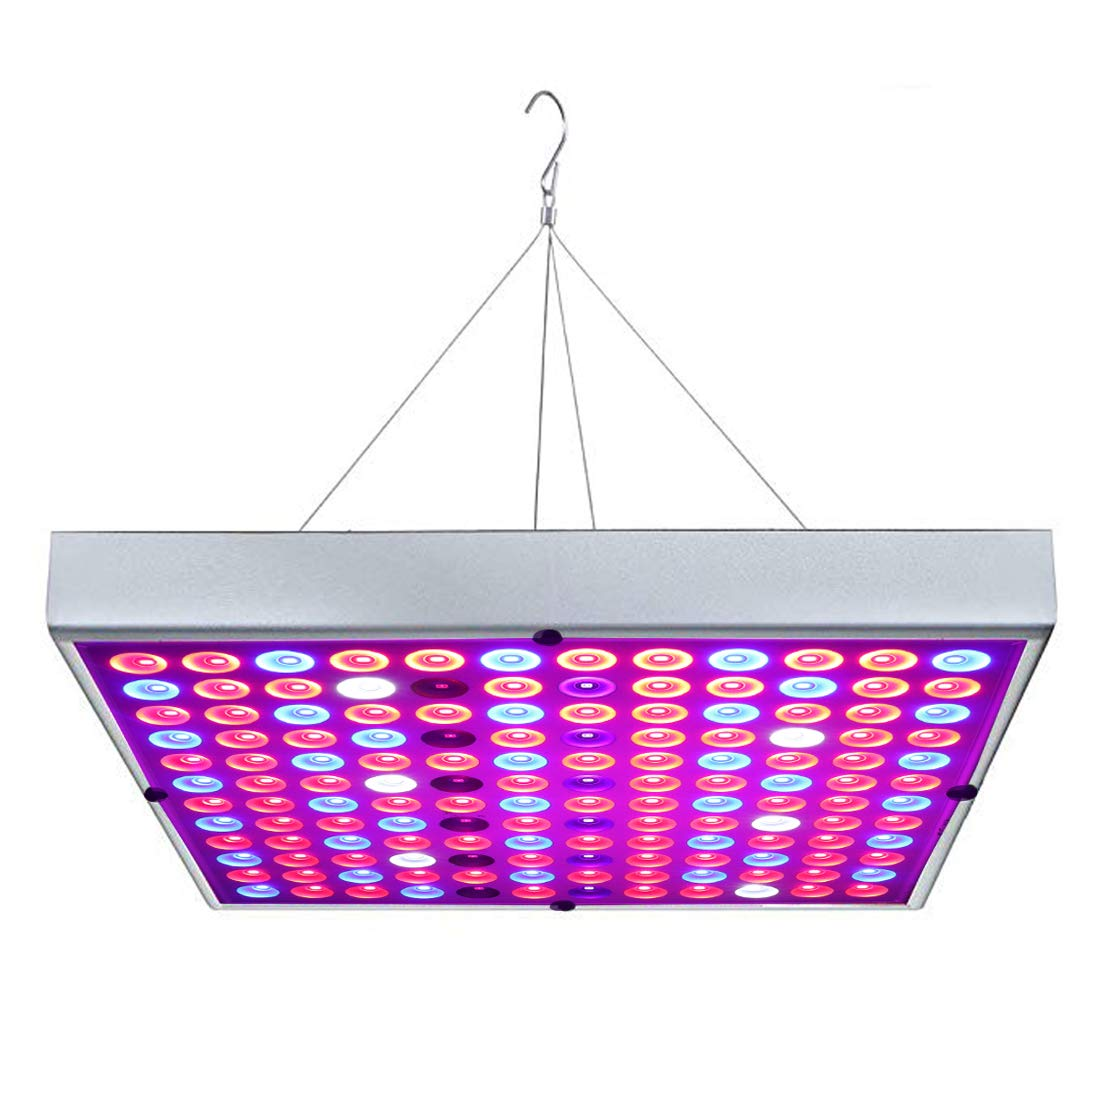 Juhefa LED Grow Light, 45W Grow Lamp Full Spectrum with IR UV Lights for Indoor Plants All Growing Stage, Garden Vegetable Flowers Fruits Succulents Seedlings